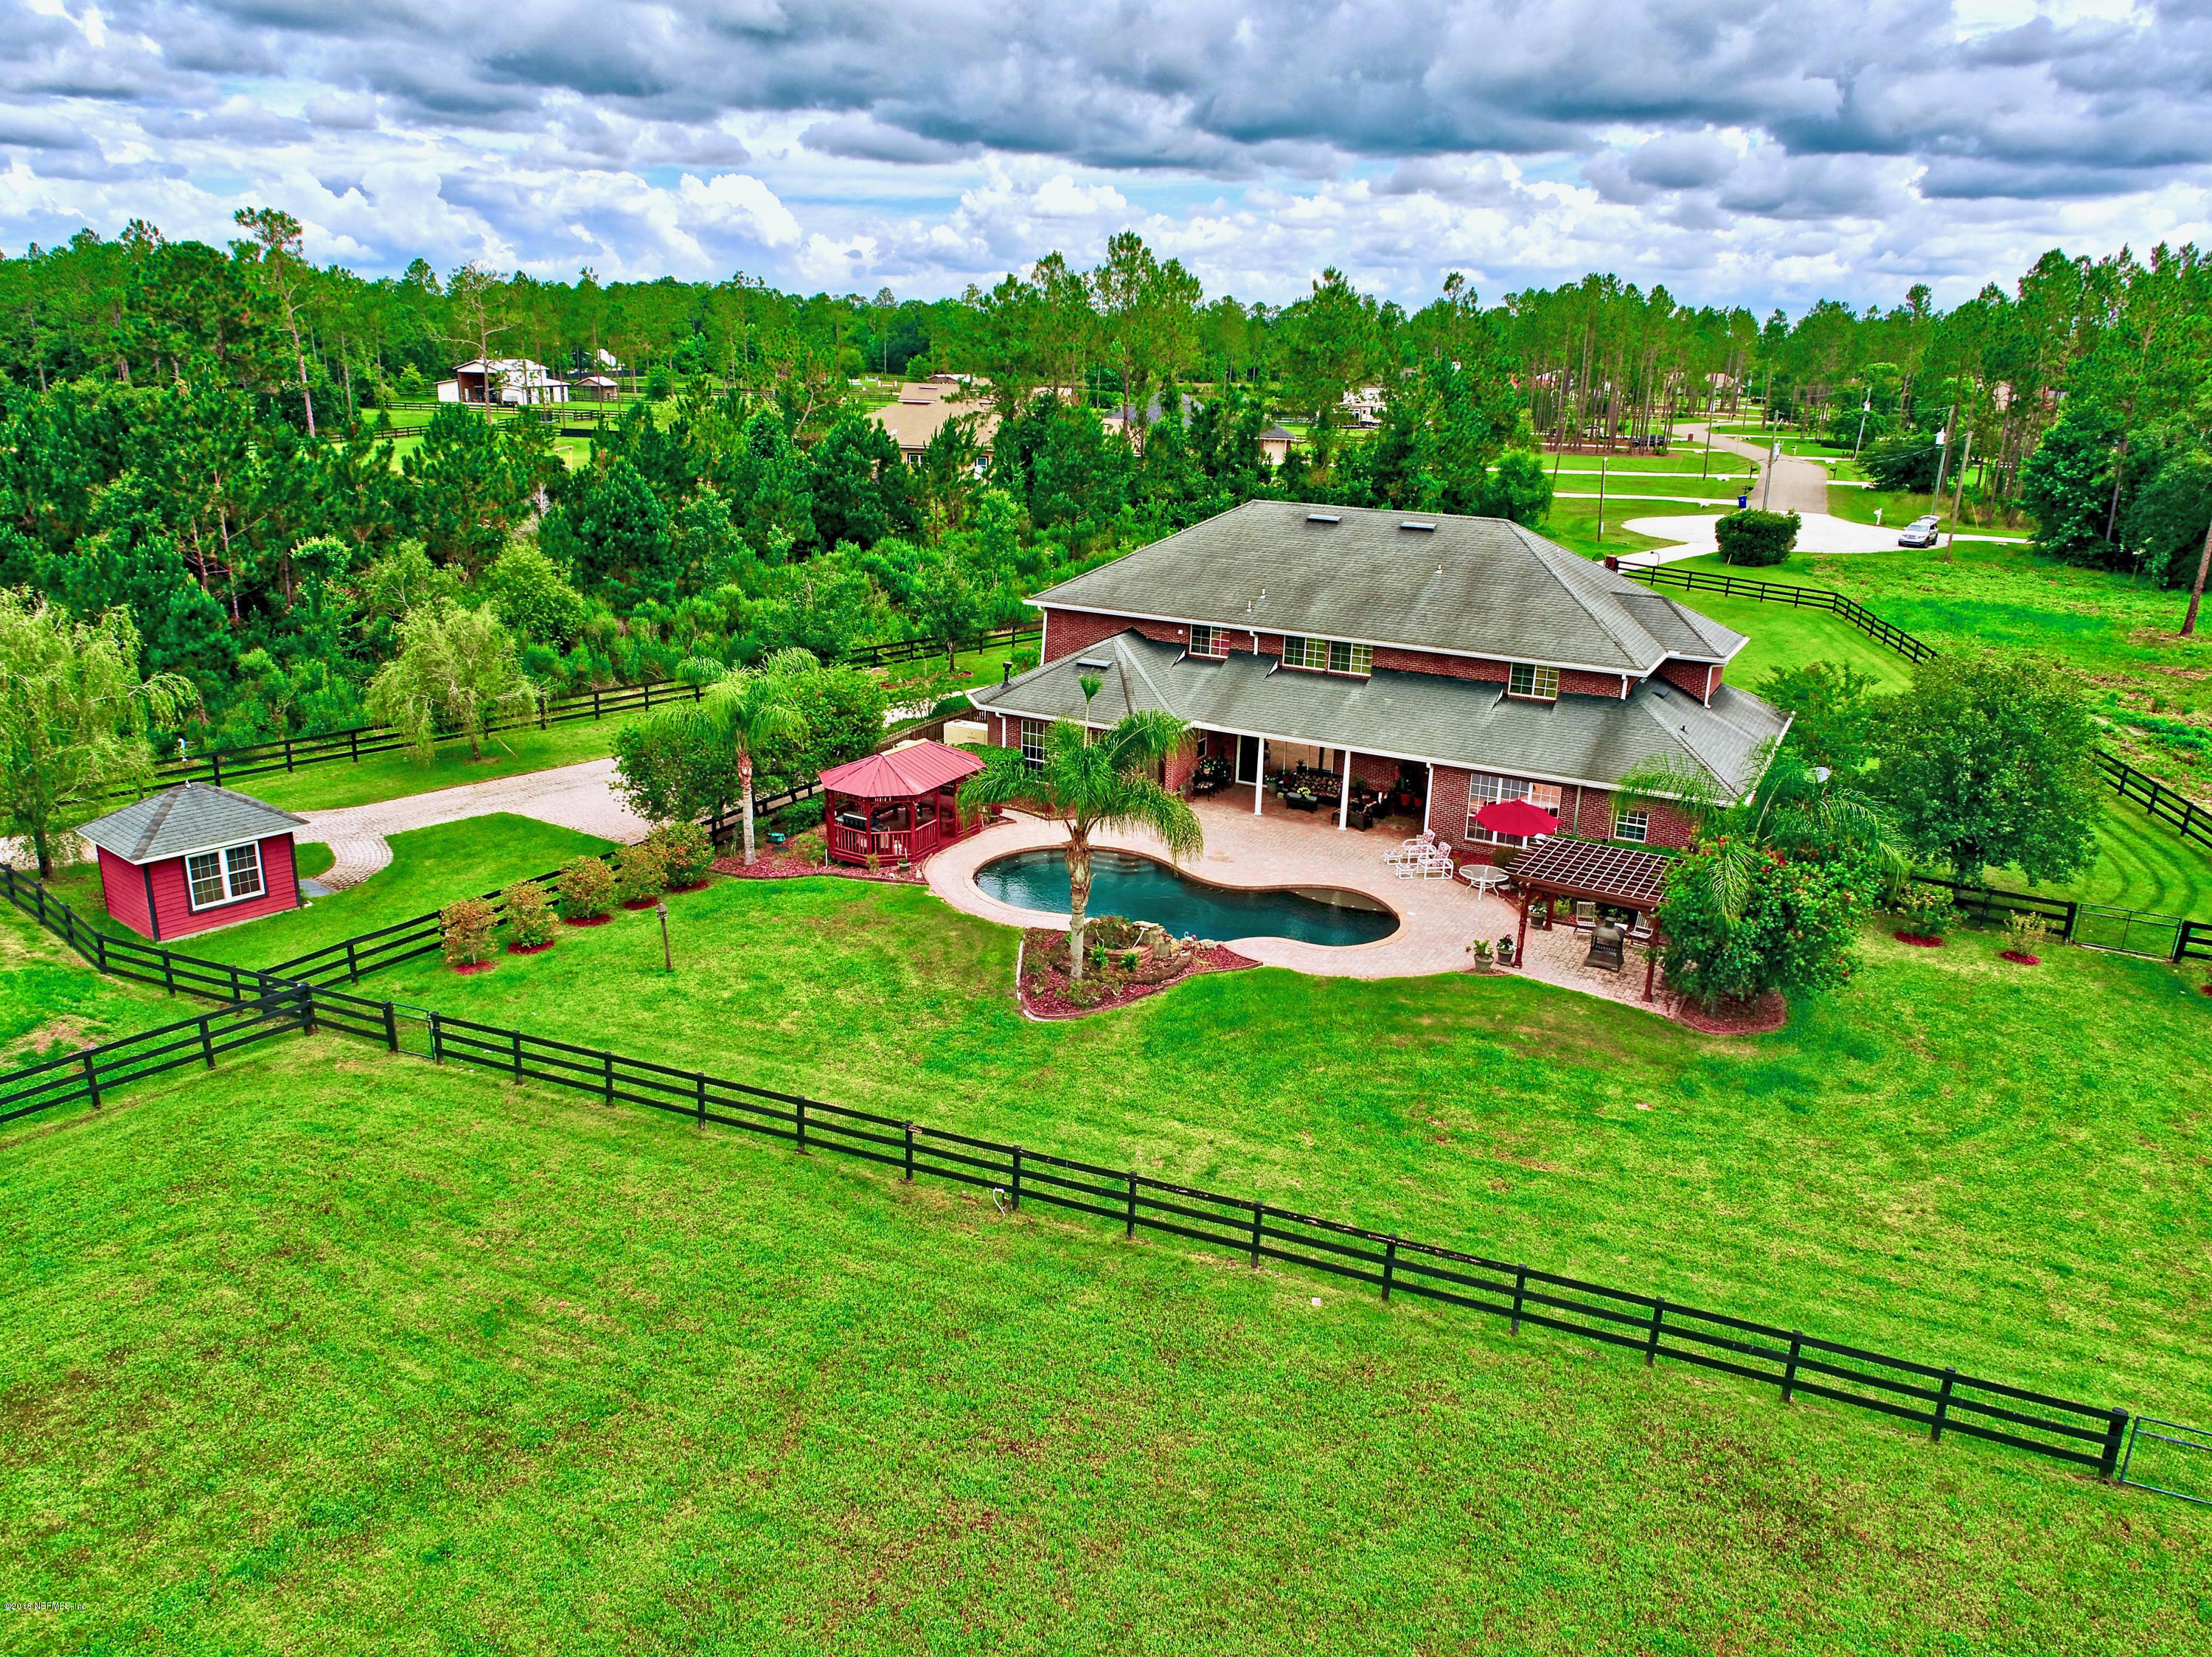 243 TOWERS RANCH, ST AUGUSTINE, FLORIDA 32092, 5 Bedrooms Bedrooms, ,6 BathroomsBathrooms,Residential - single family,For sale,TOWERS RANCH,940469